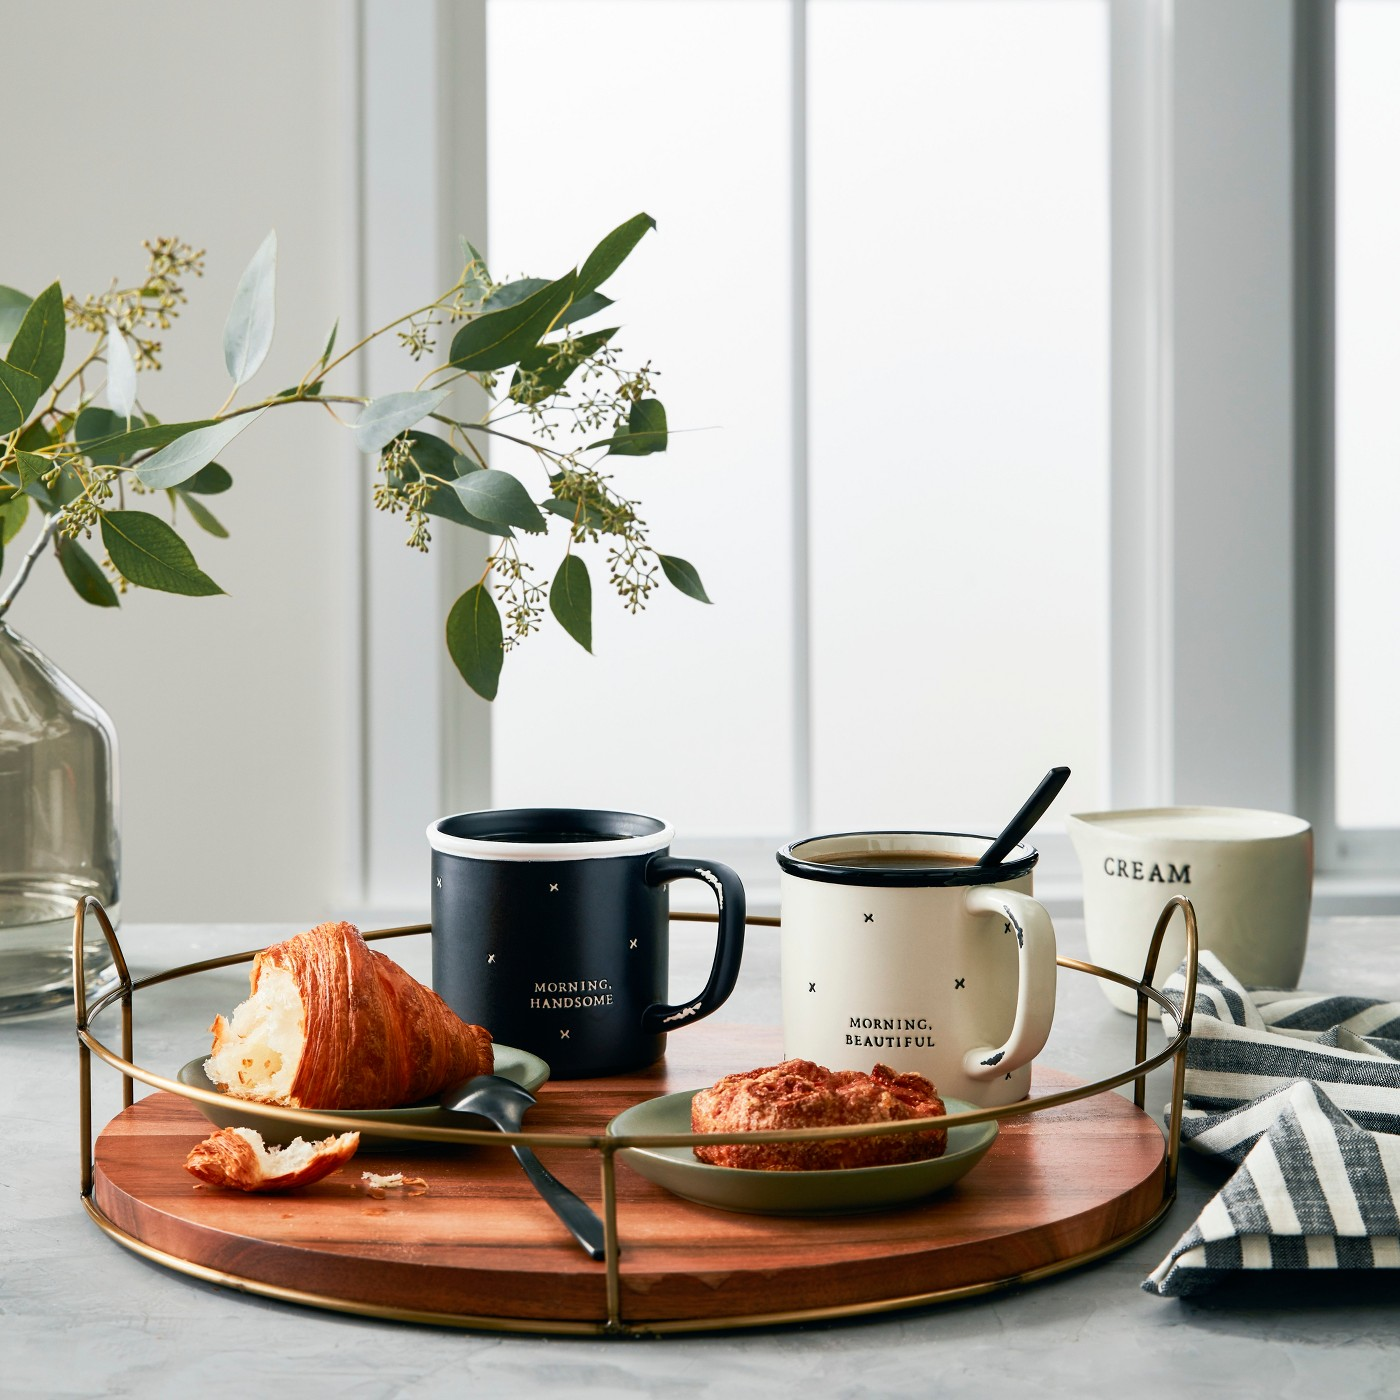 Joanna Gaines Target Fall Collection, Wooden Tray